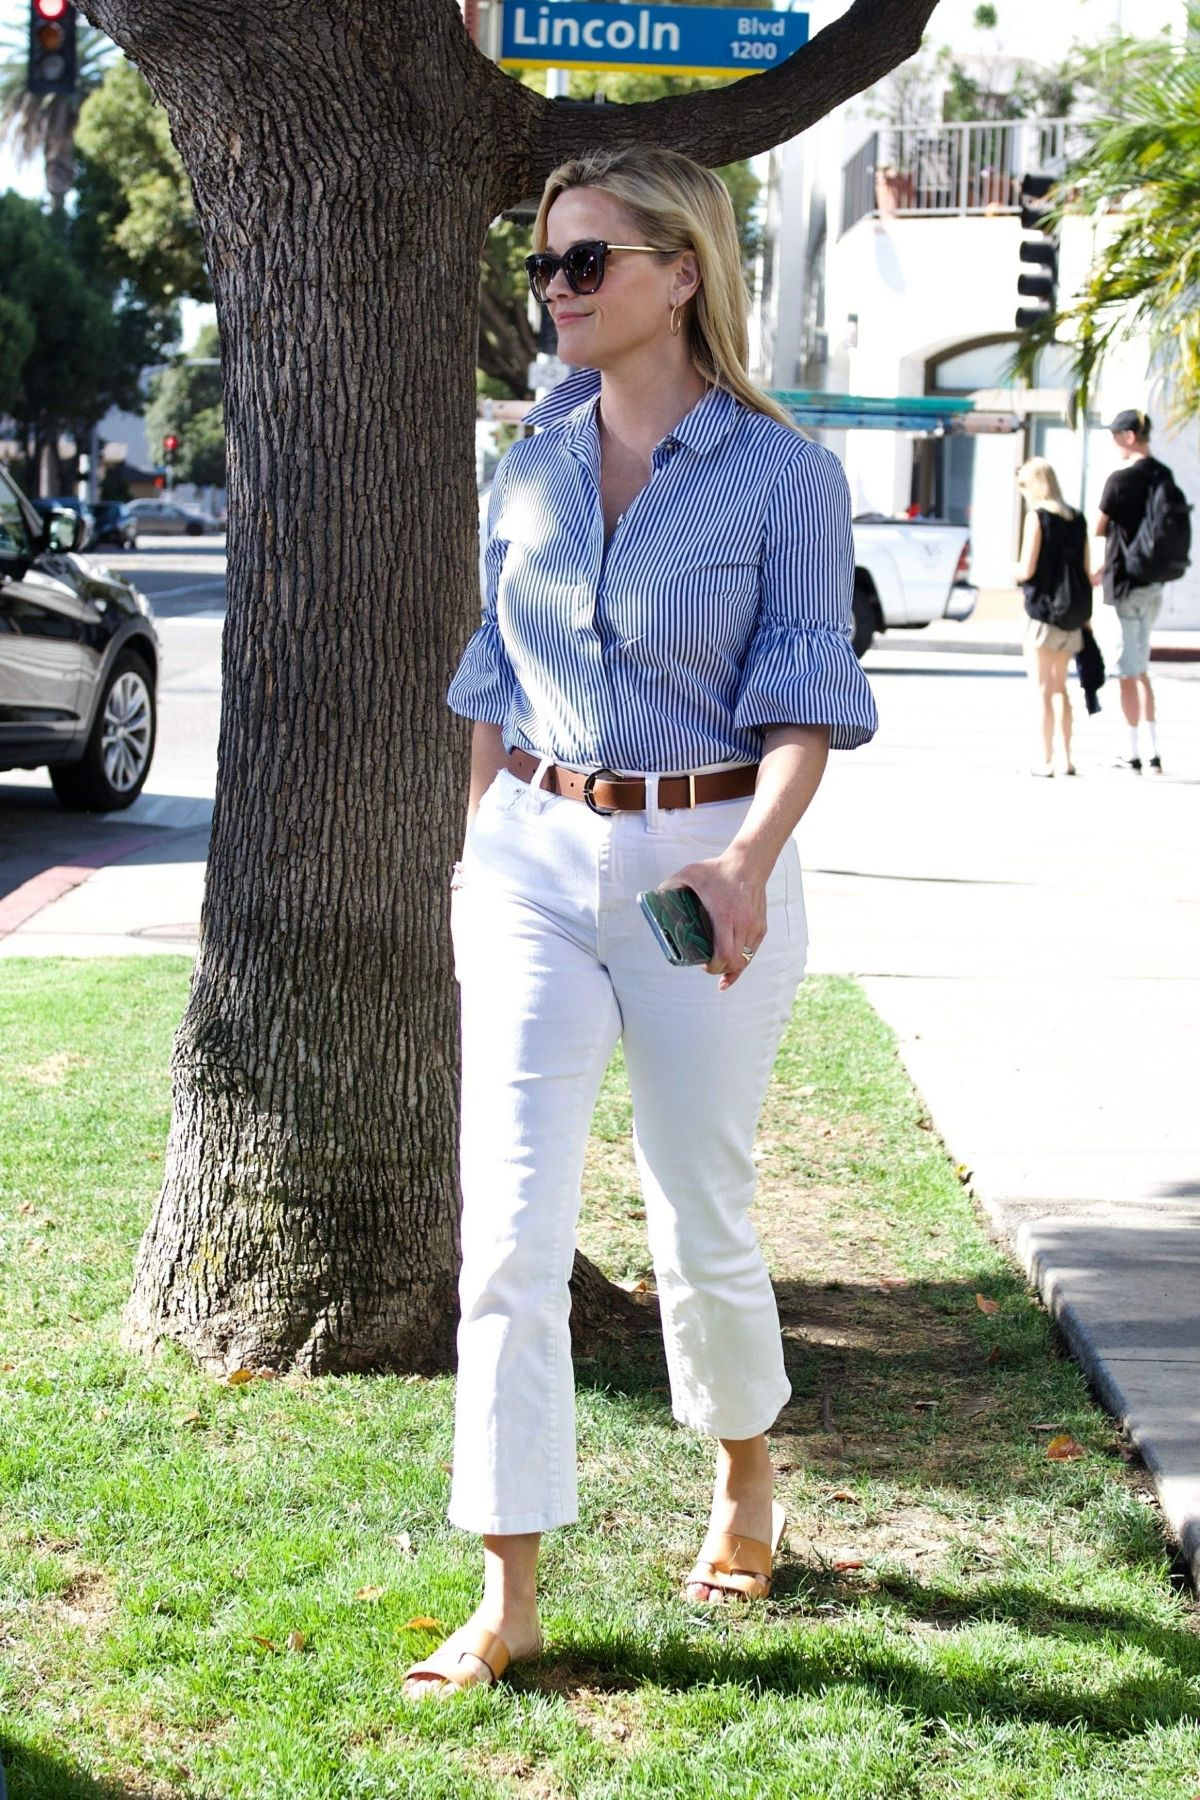 Reese Witherspoon Heading off for a business meeting in Brentwood